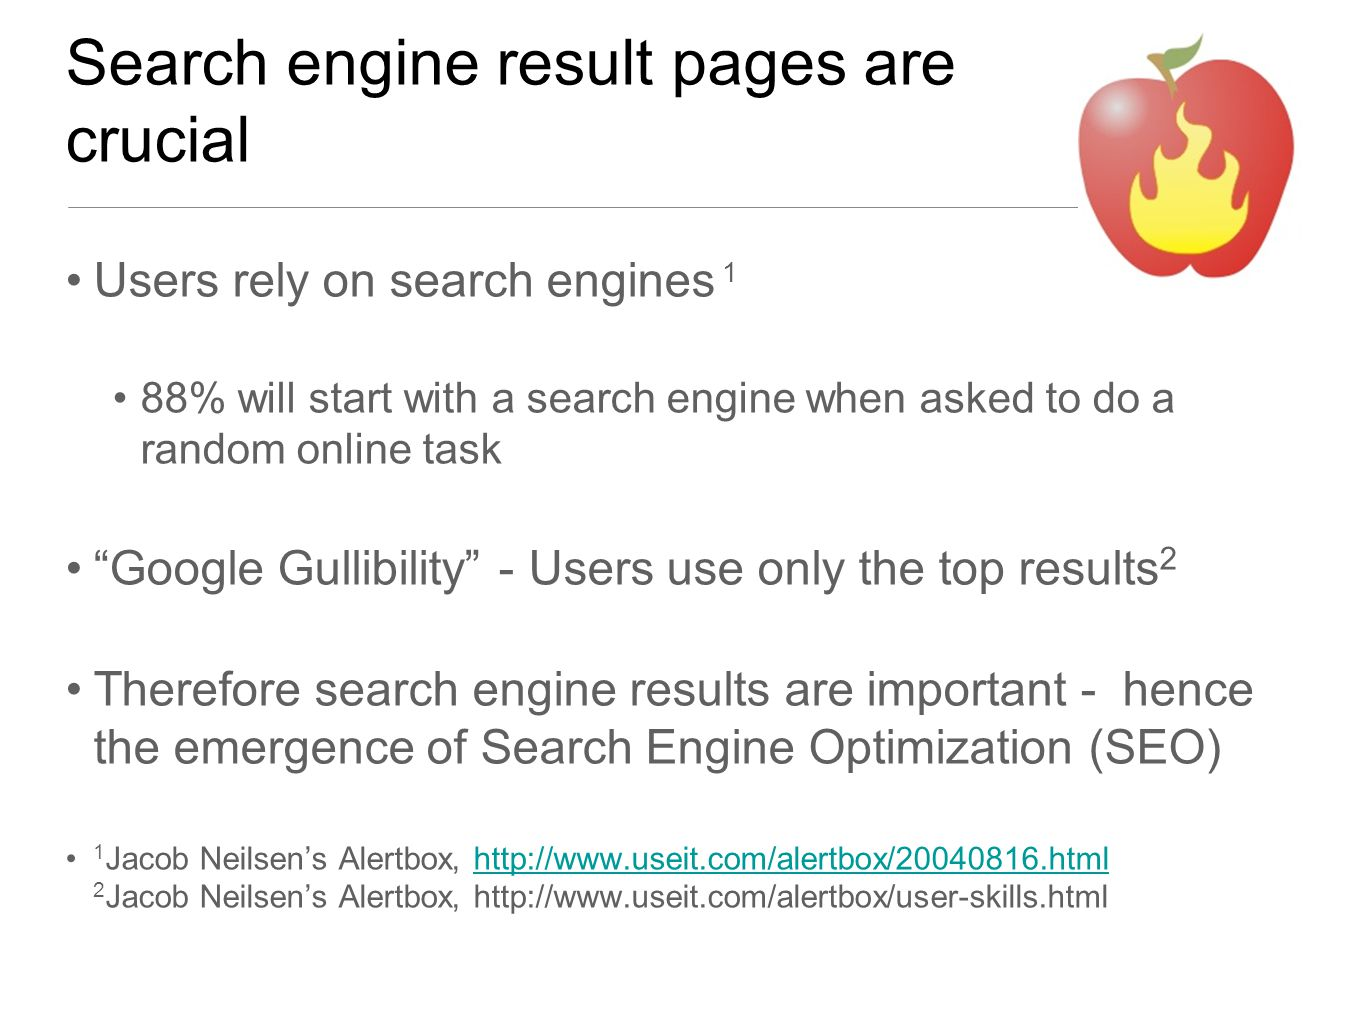 Search engine result pages are crucial Users rely on search engines 1 88% will start with a search engine when asked to do a random online task Google Gullibility - Users use only the top results 2 Therefore search engine results are important - hence the emergence of Search Engine Optimization (SEO) 1 Jacob Neilsen's Alertbox, http://www.useit.com/alertbox/20040816.html 2 Jacob Neilsen's Alertbox, http://www.useit.com/alertbox/user-skills.htmlhttp://www.useit.com/alertbox/20040816.html